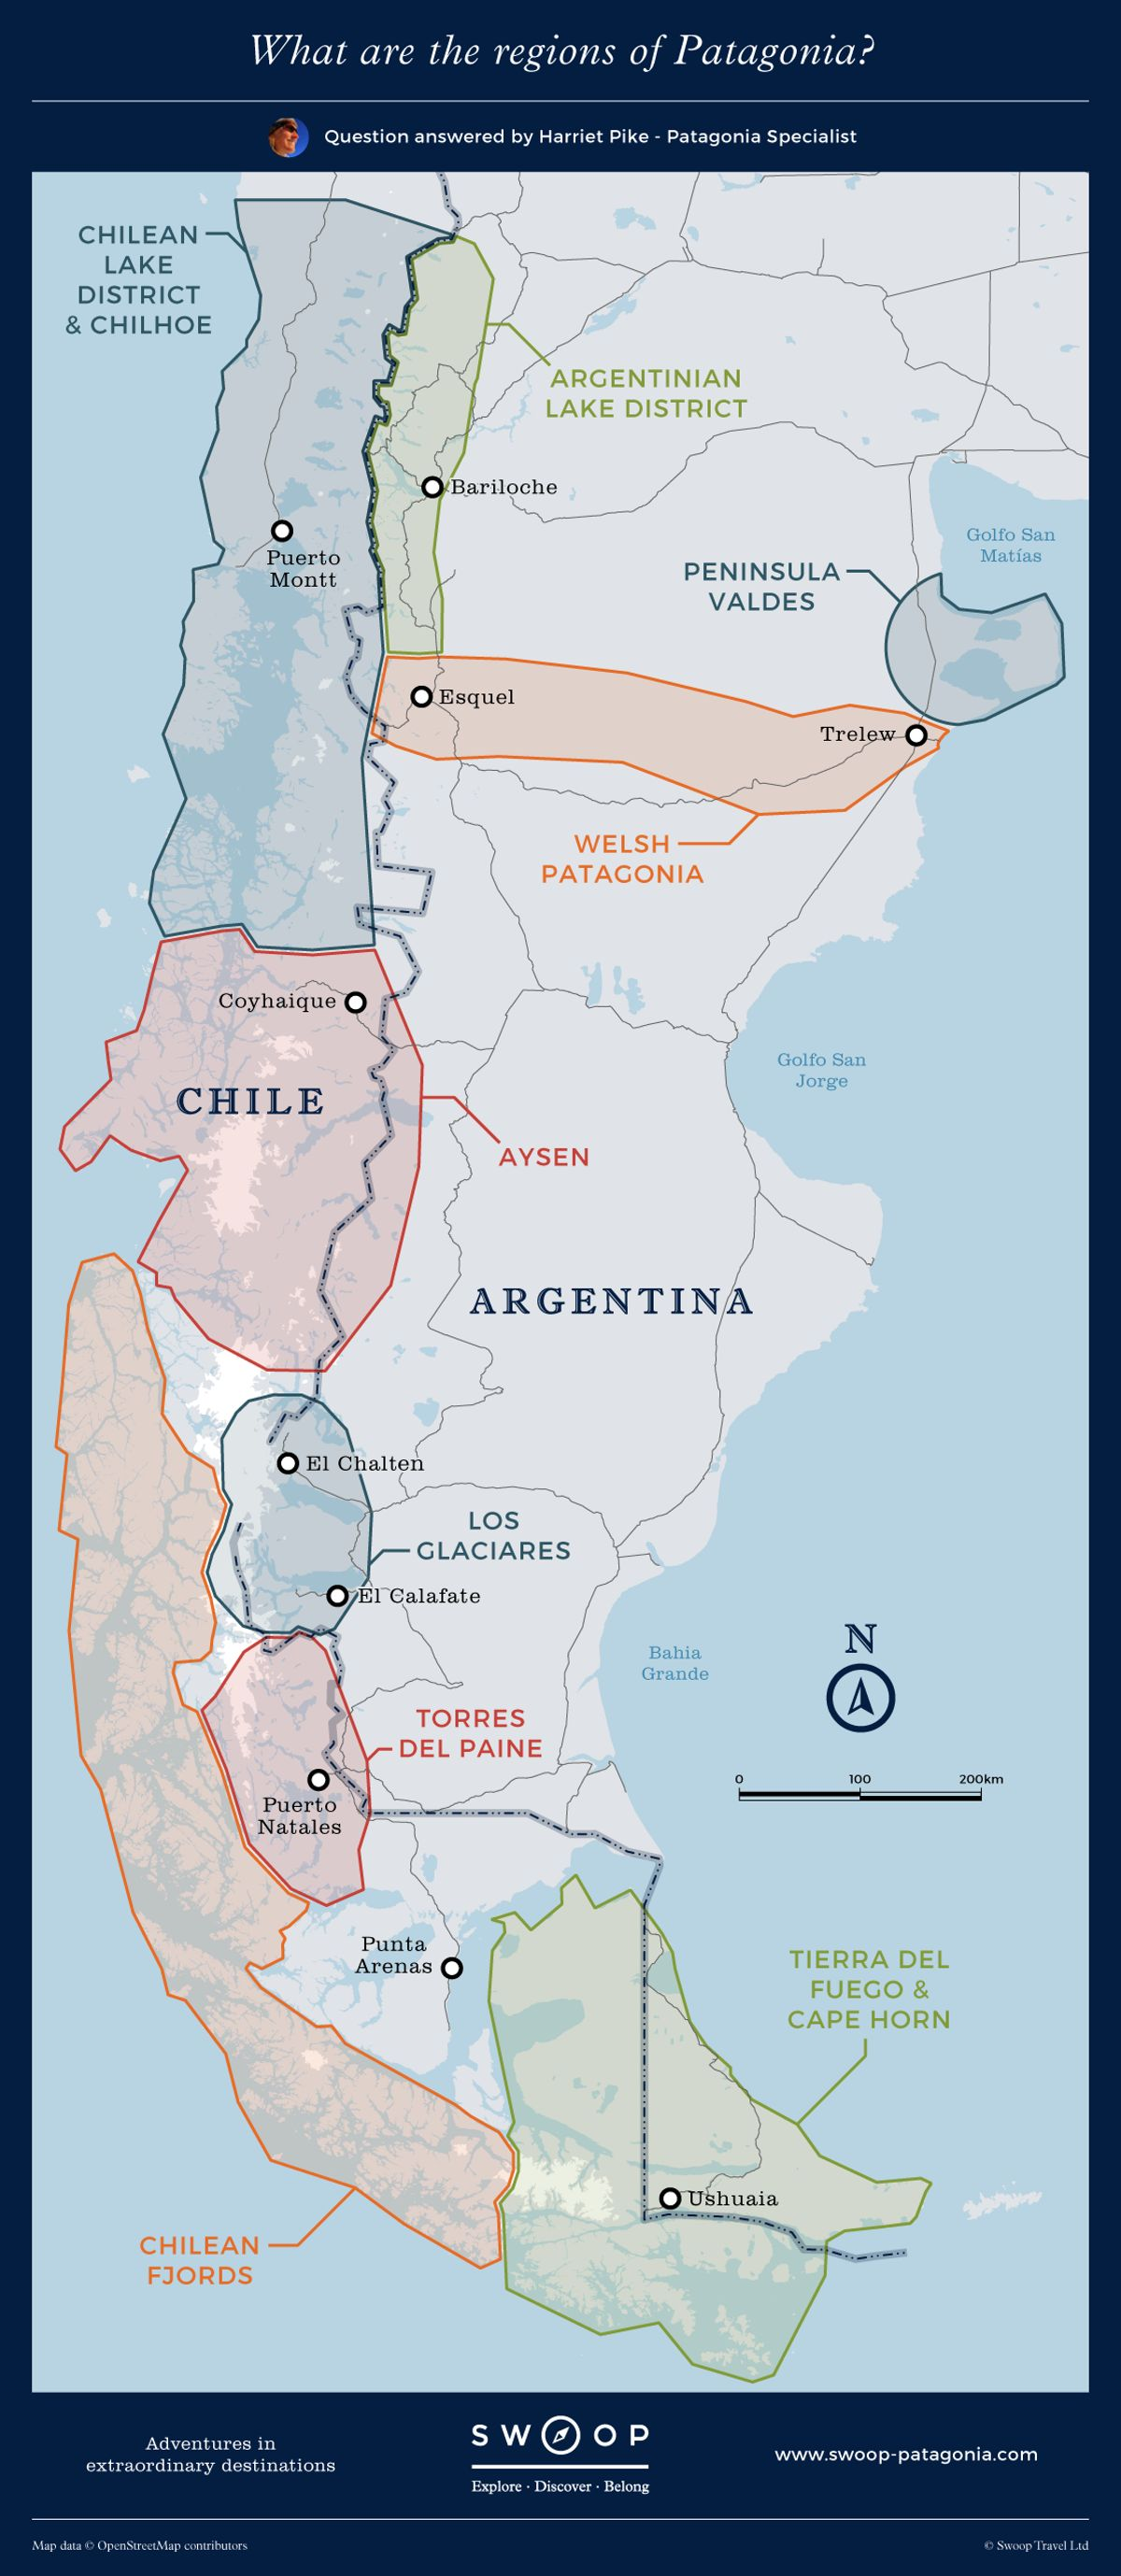 What are the regions of Patagonia?